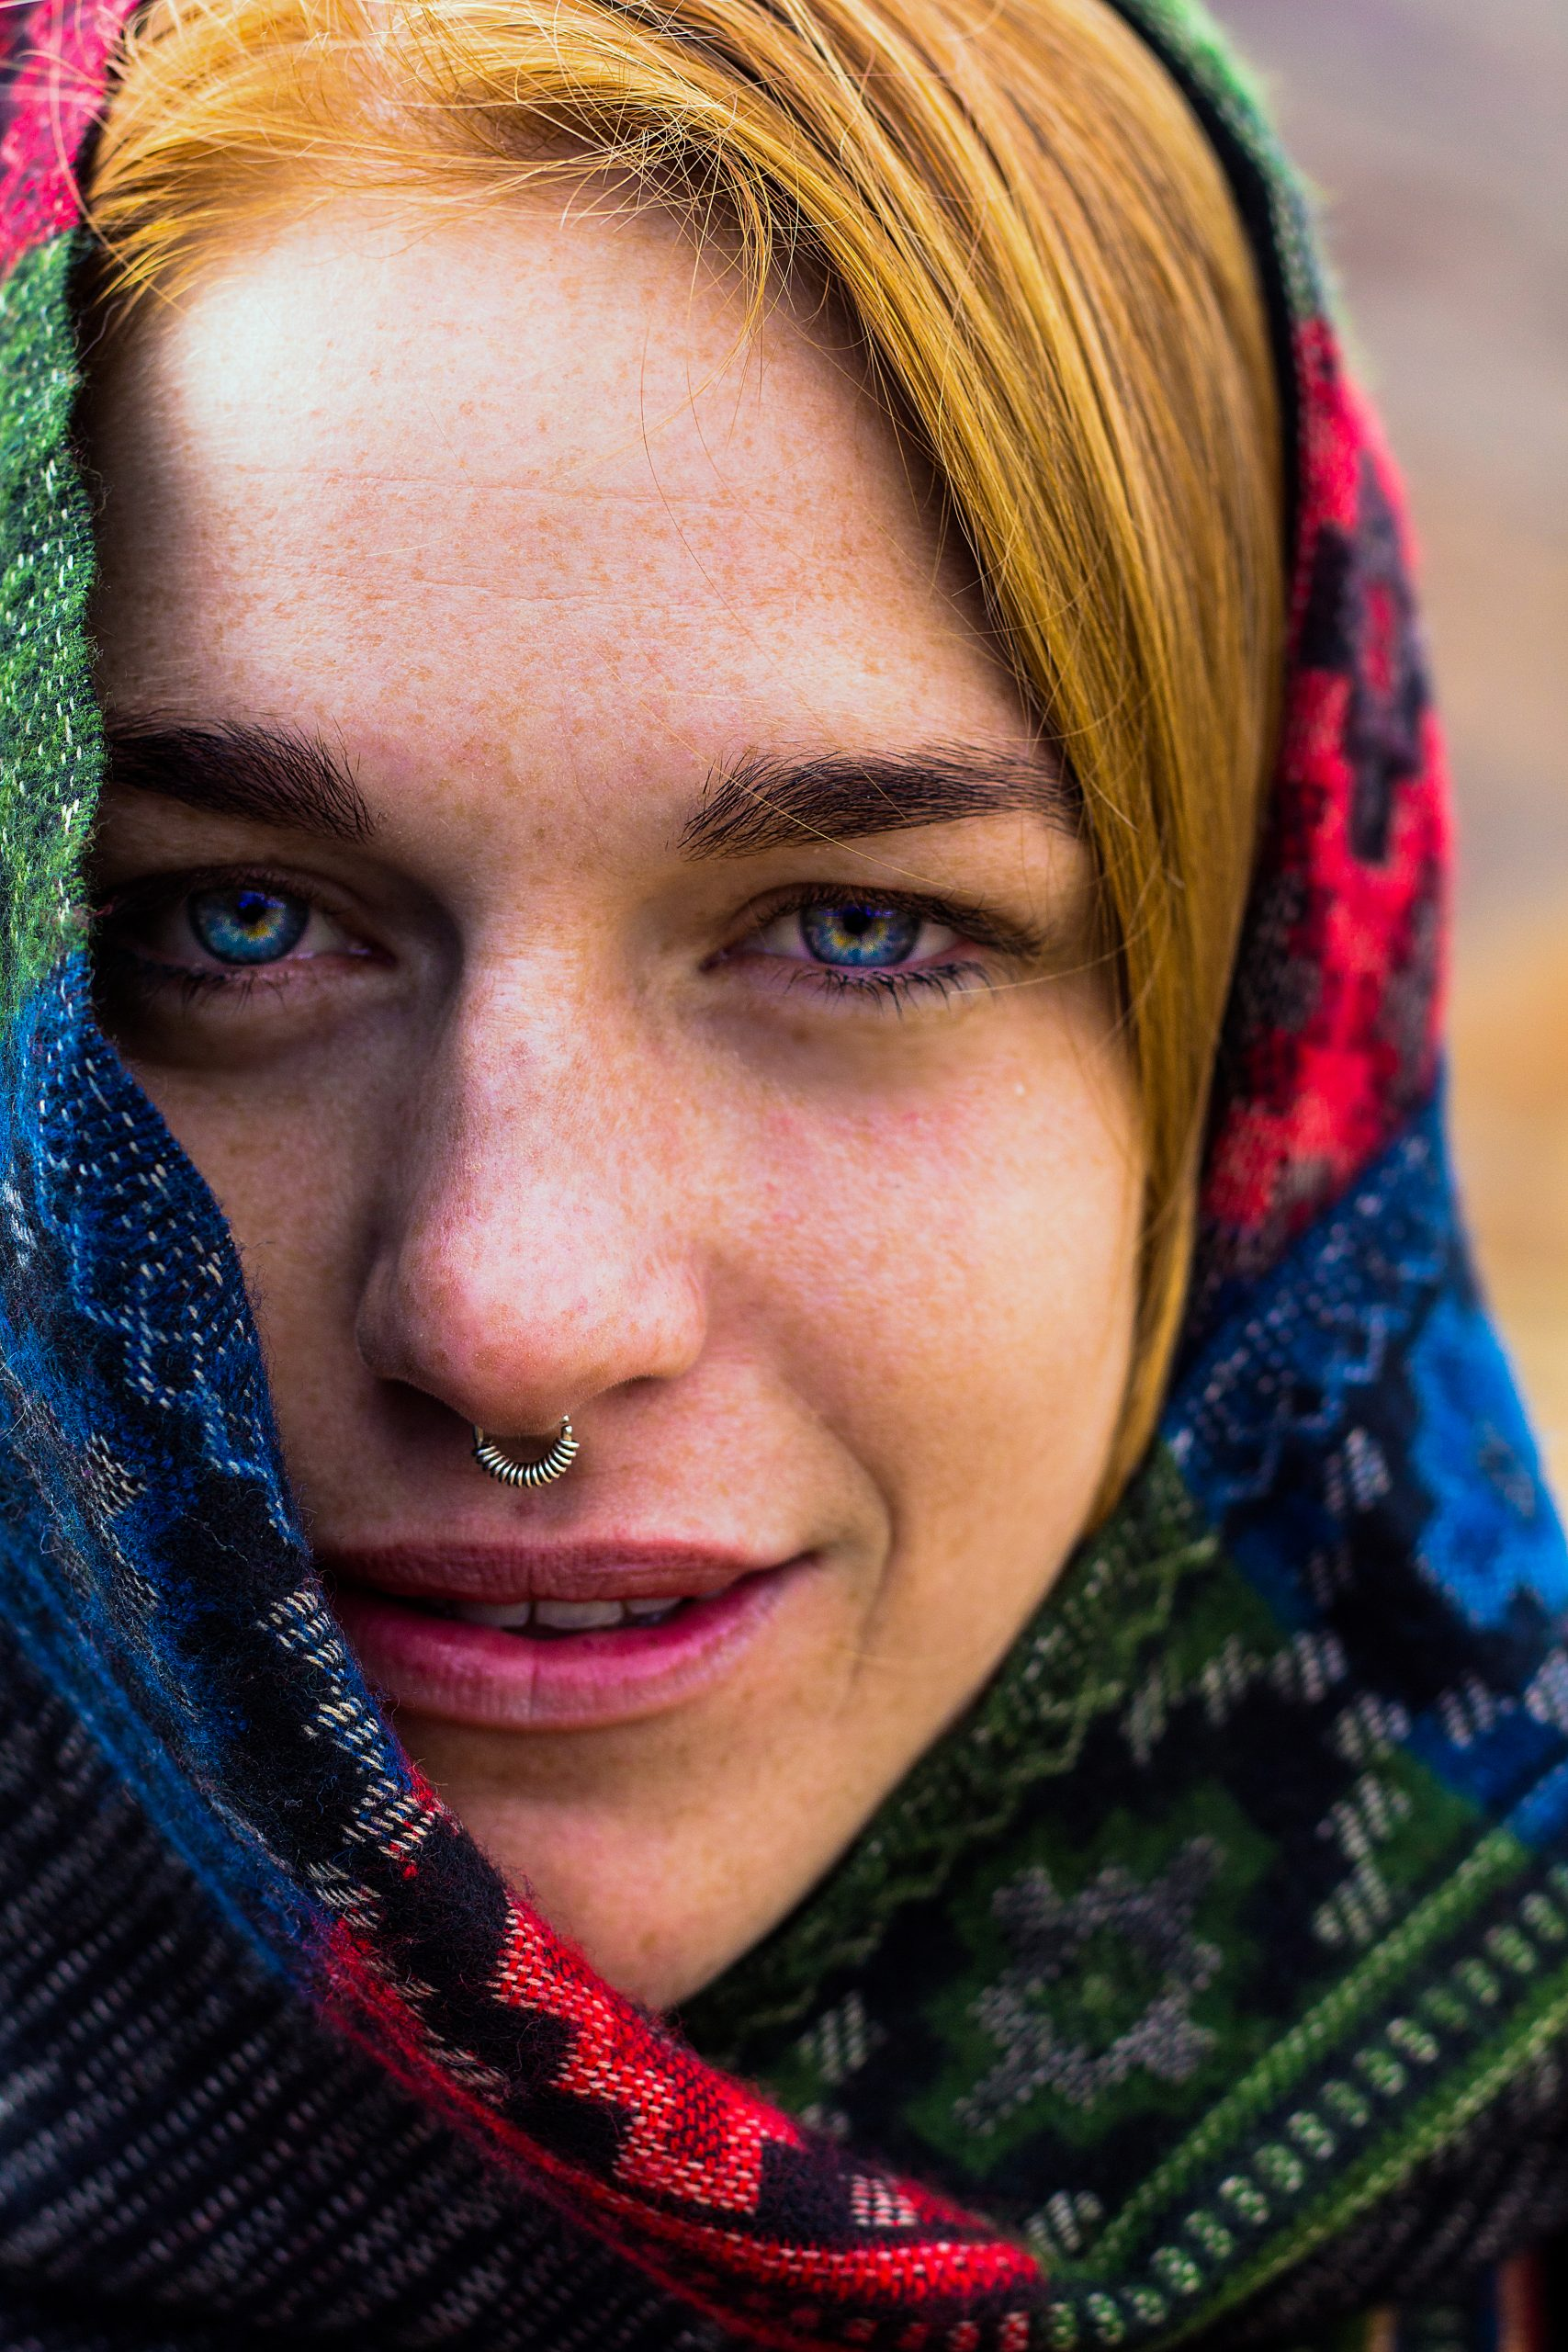 Portrait of a foreigner woman.